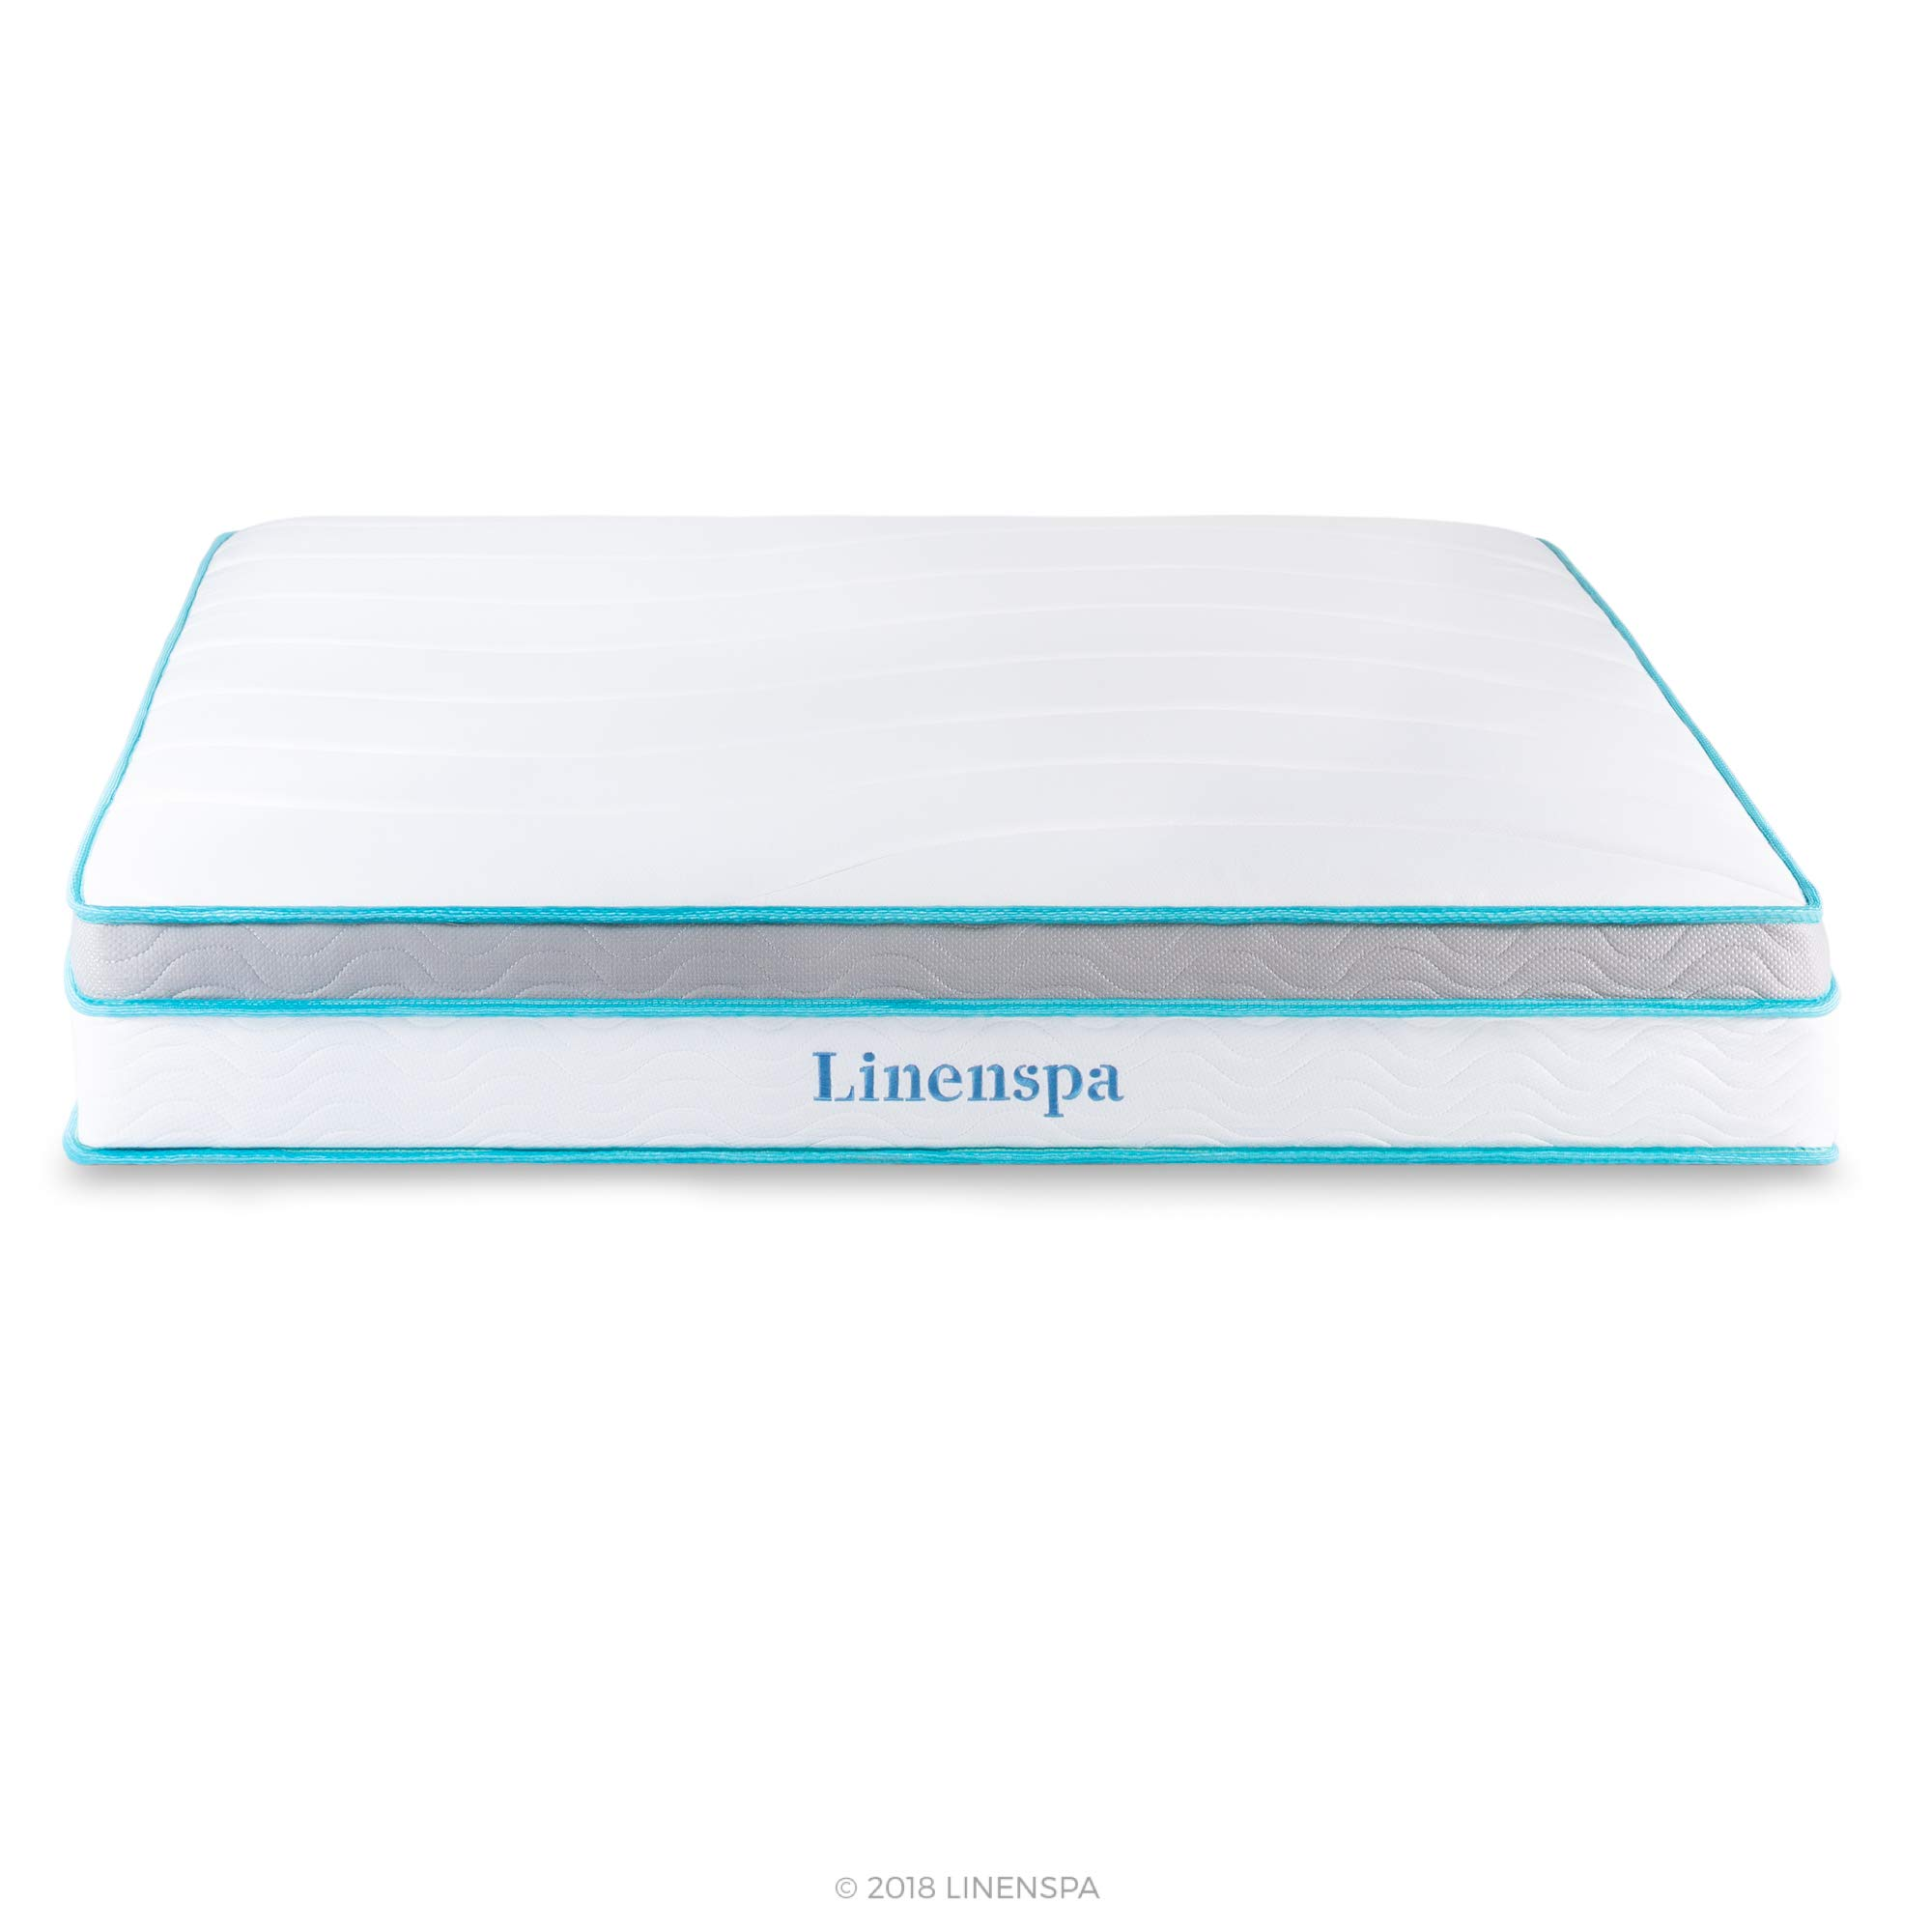 Linenspa LS10FFMFSP Bed Mattress Conventional, Full, 10-Inch by Linenspa (Image #7)